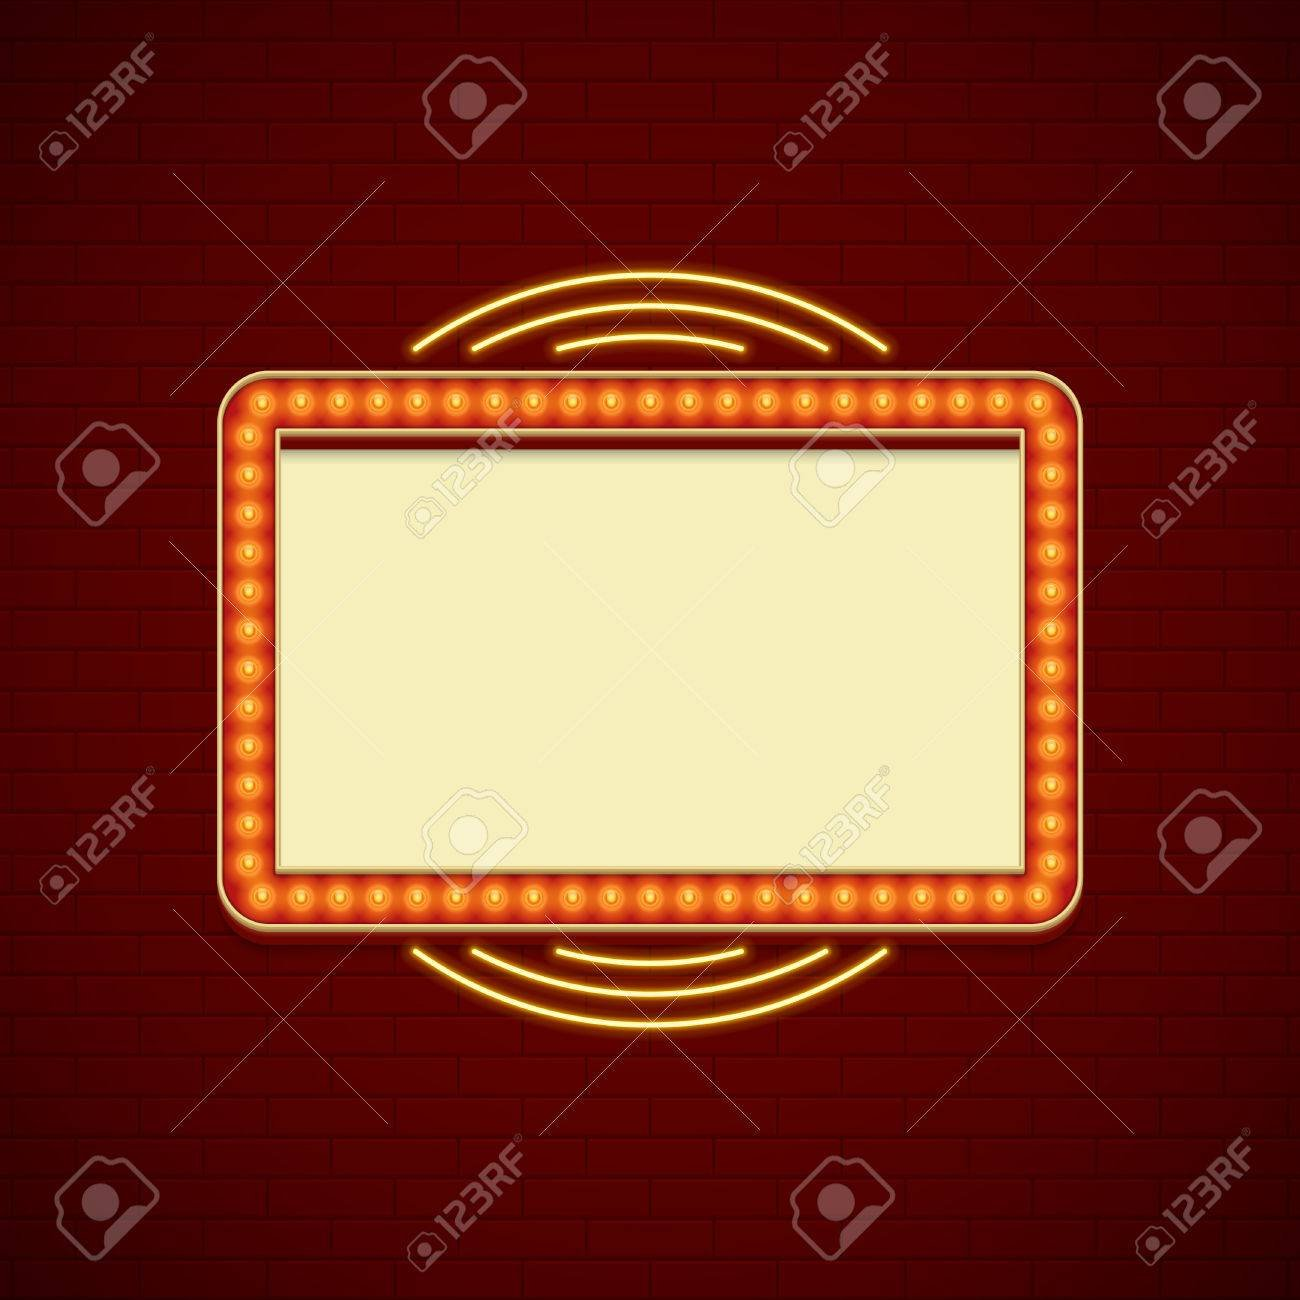 Retro Showtime Sign Design Cinema Signage Light Bulbs Frame 1300x1300